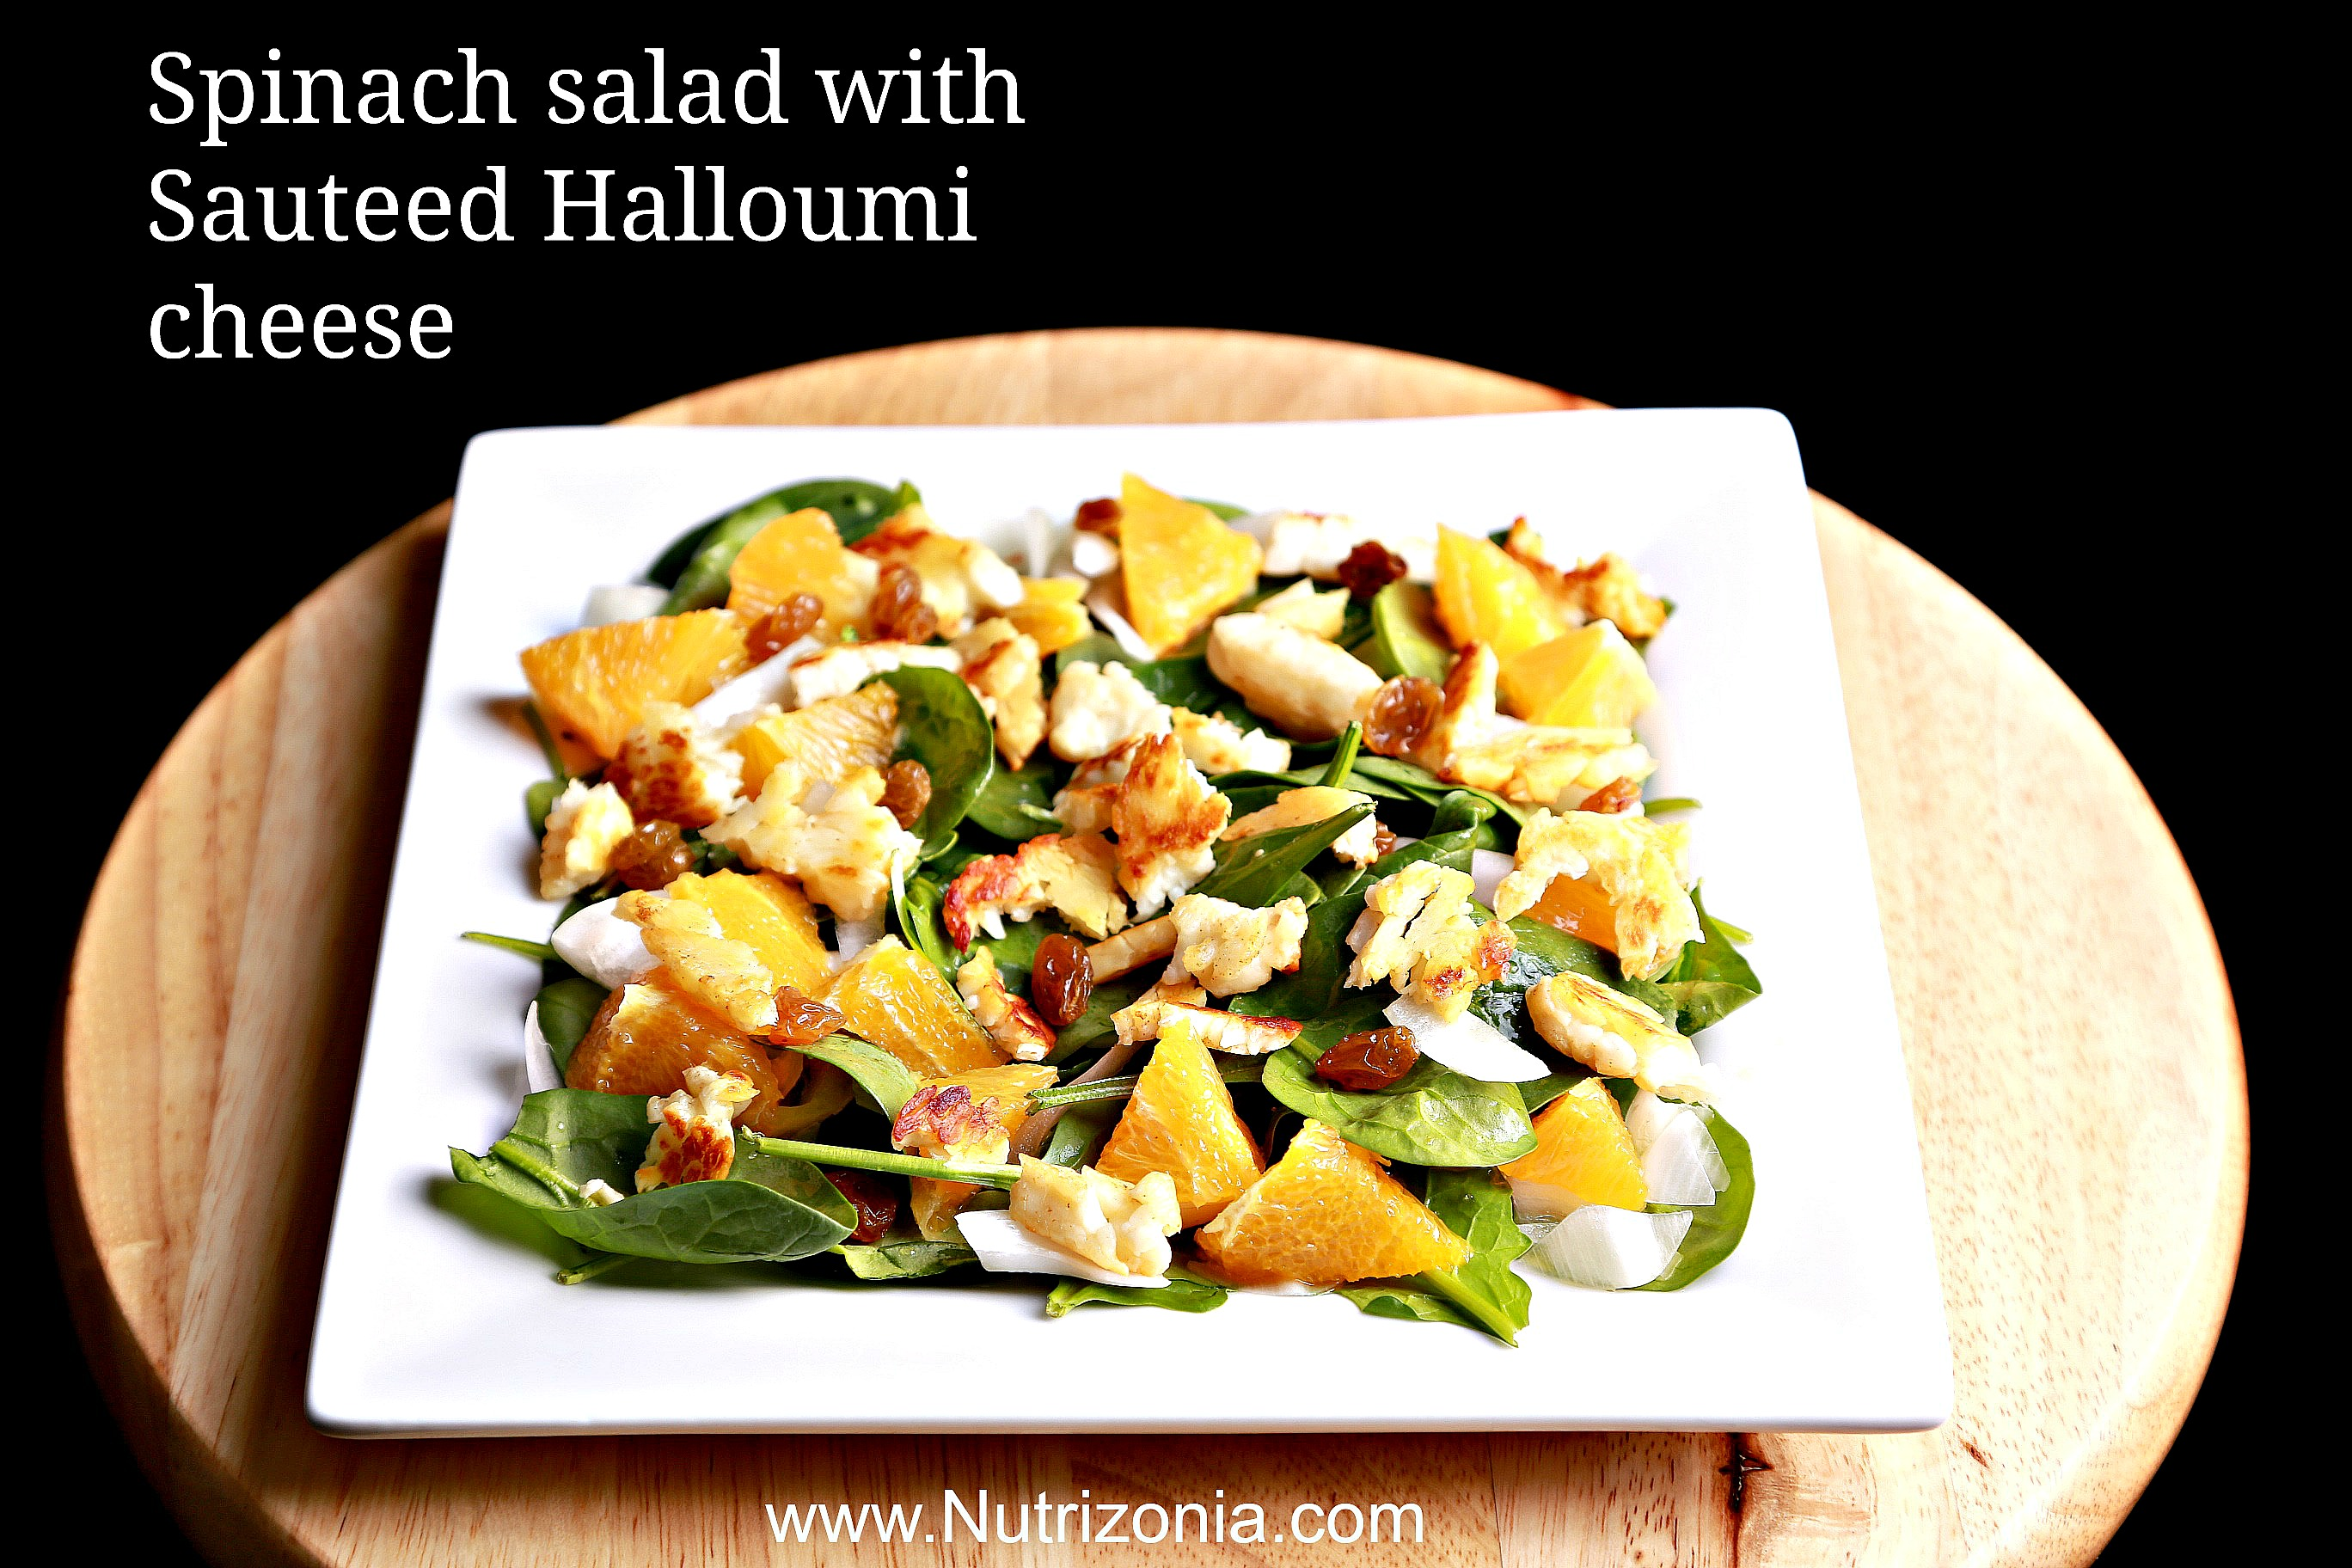 Spinach salad with Sauteed Halloumi cheese